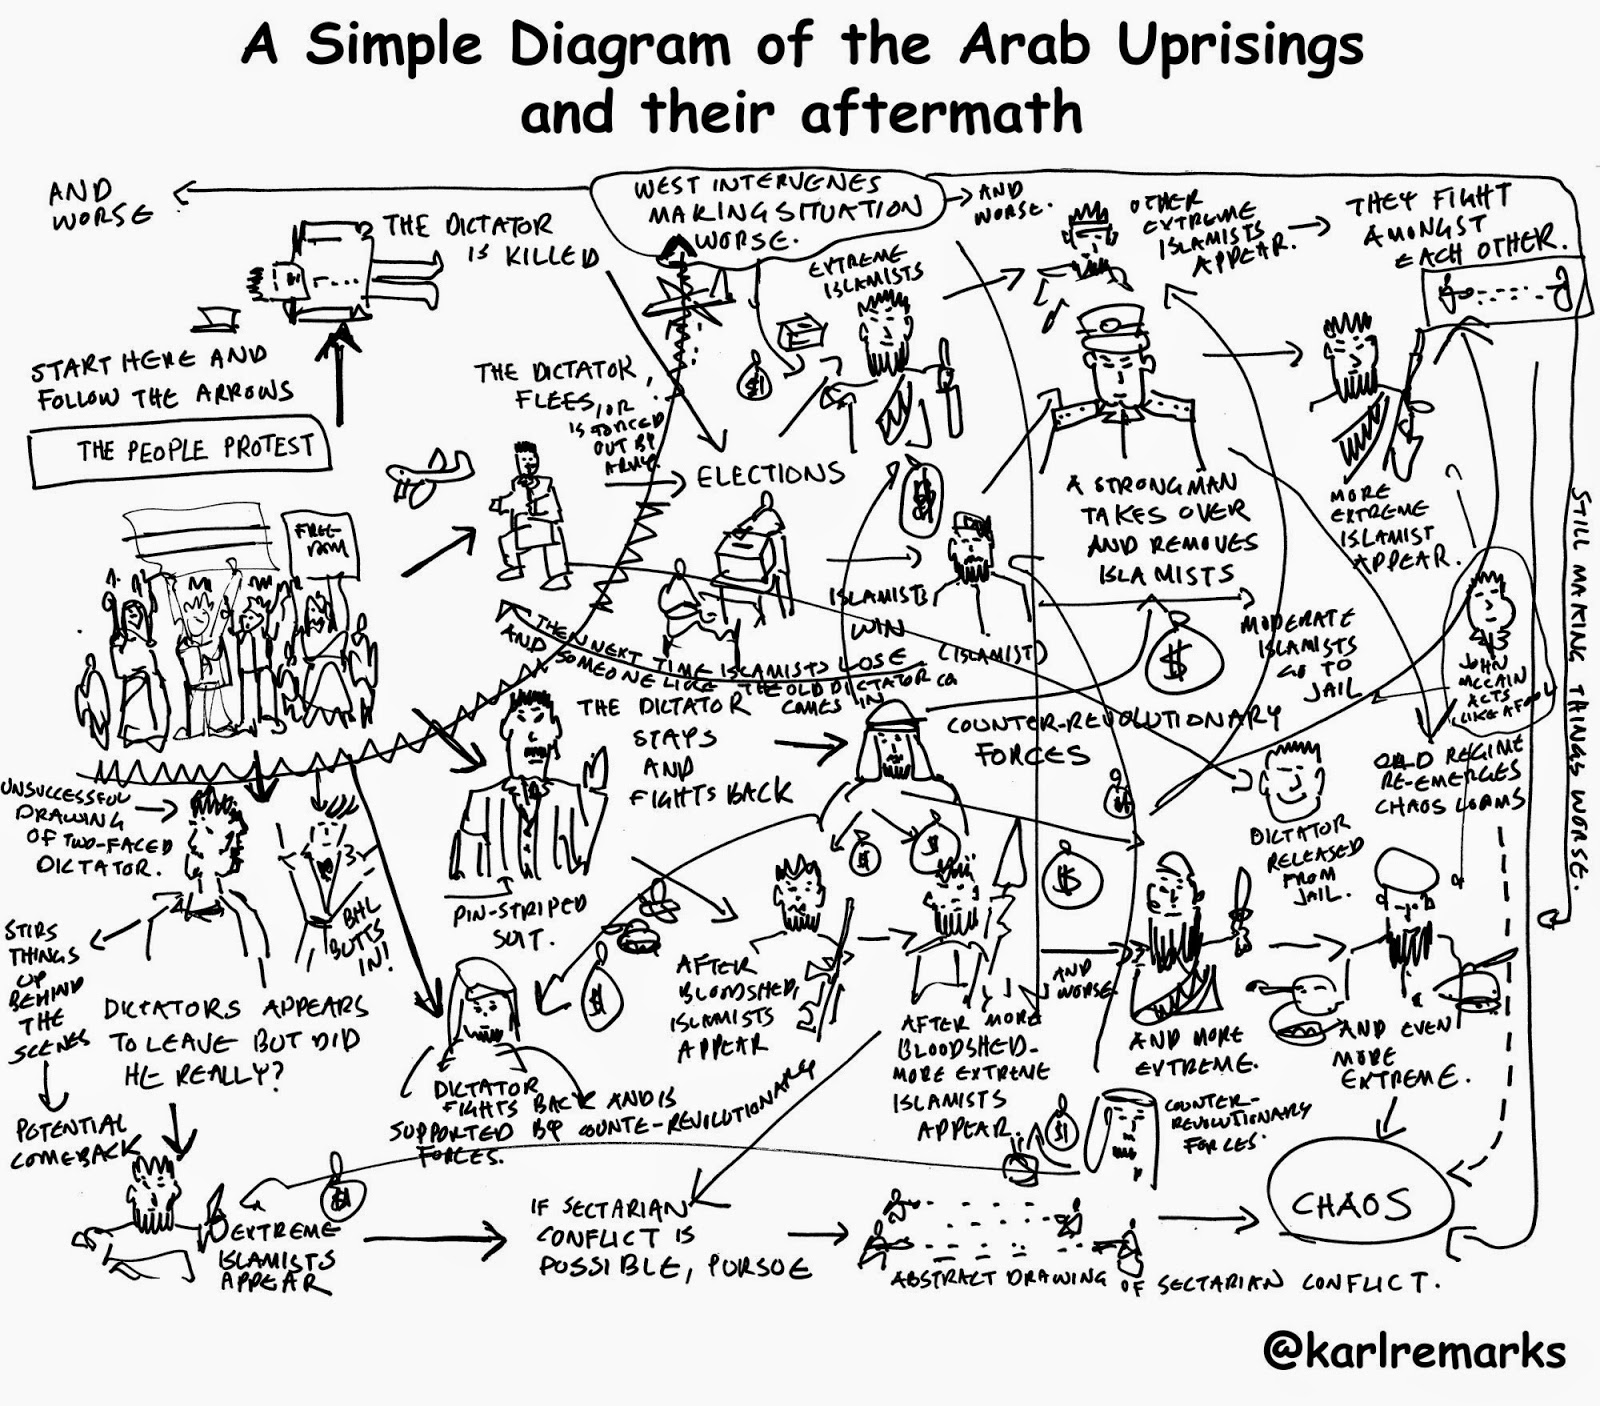 Karl Remarks A Simple Diagram Of The Arab Uprisings And